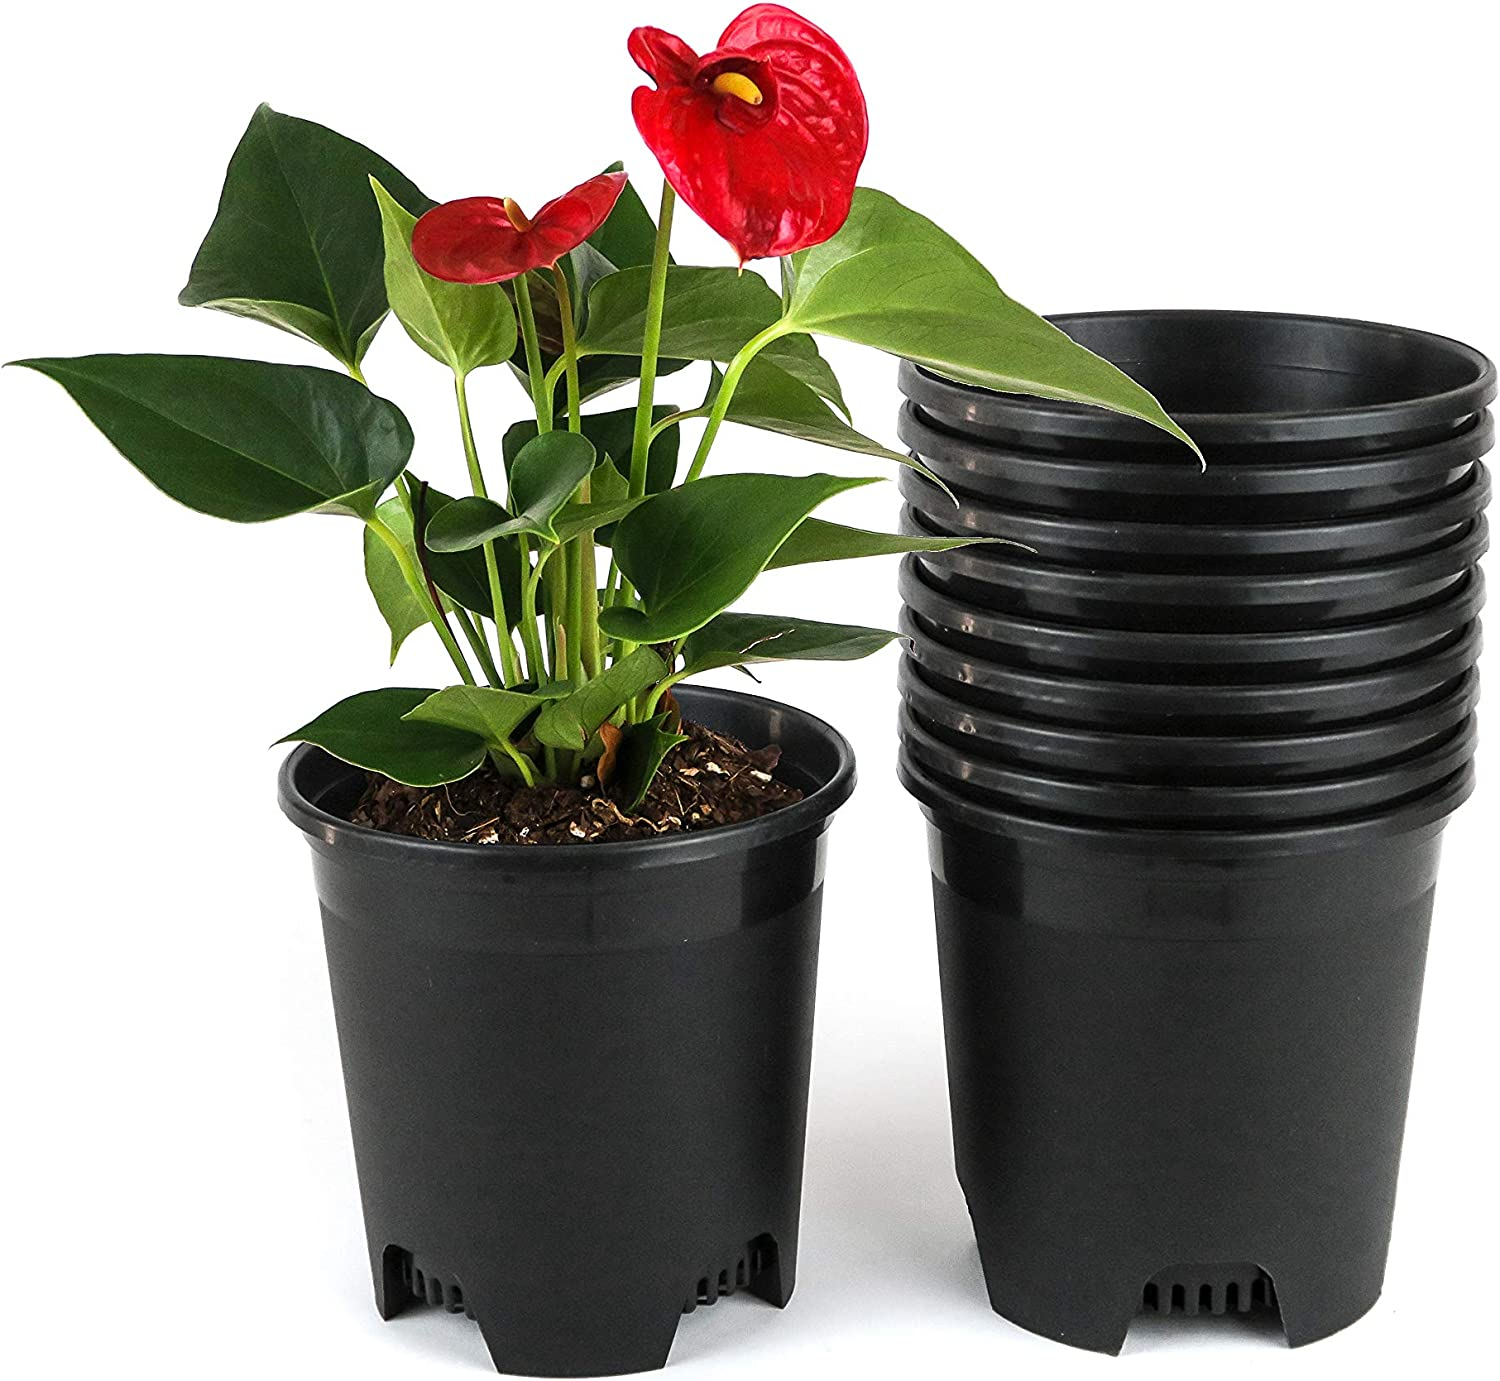 0.5 Gallon Nursery Pot Plastic Planters for Outdoor Indoor Plants 5.5 Inch Gardening Flower Pots 10-Pack 5 Inch Plant Pots with Drainage Holes